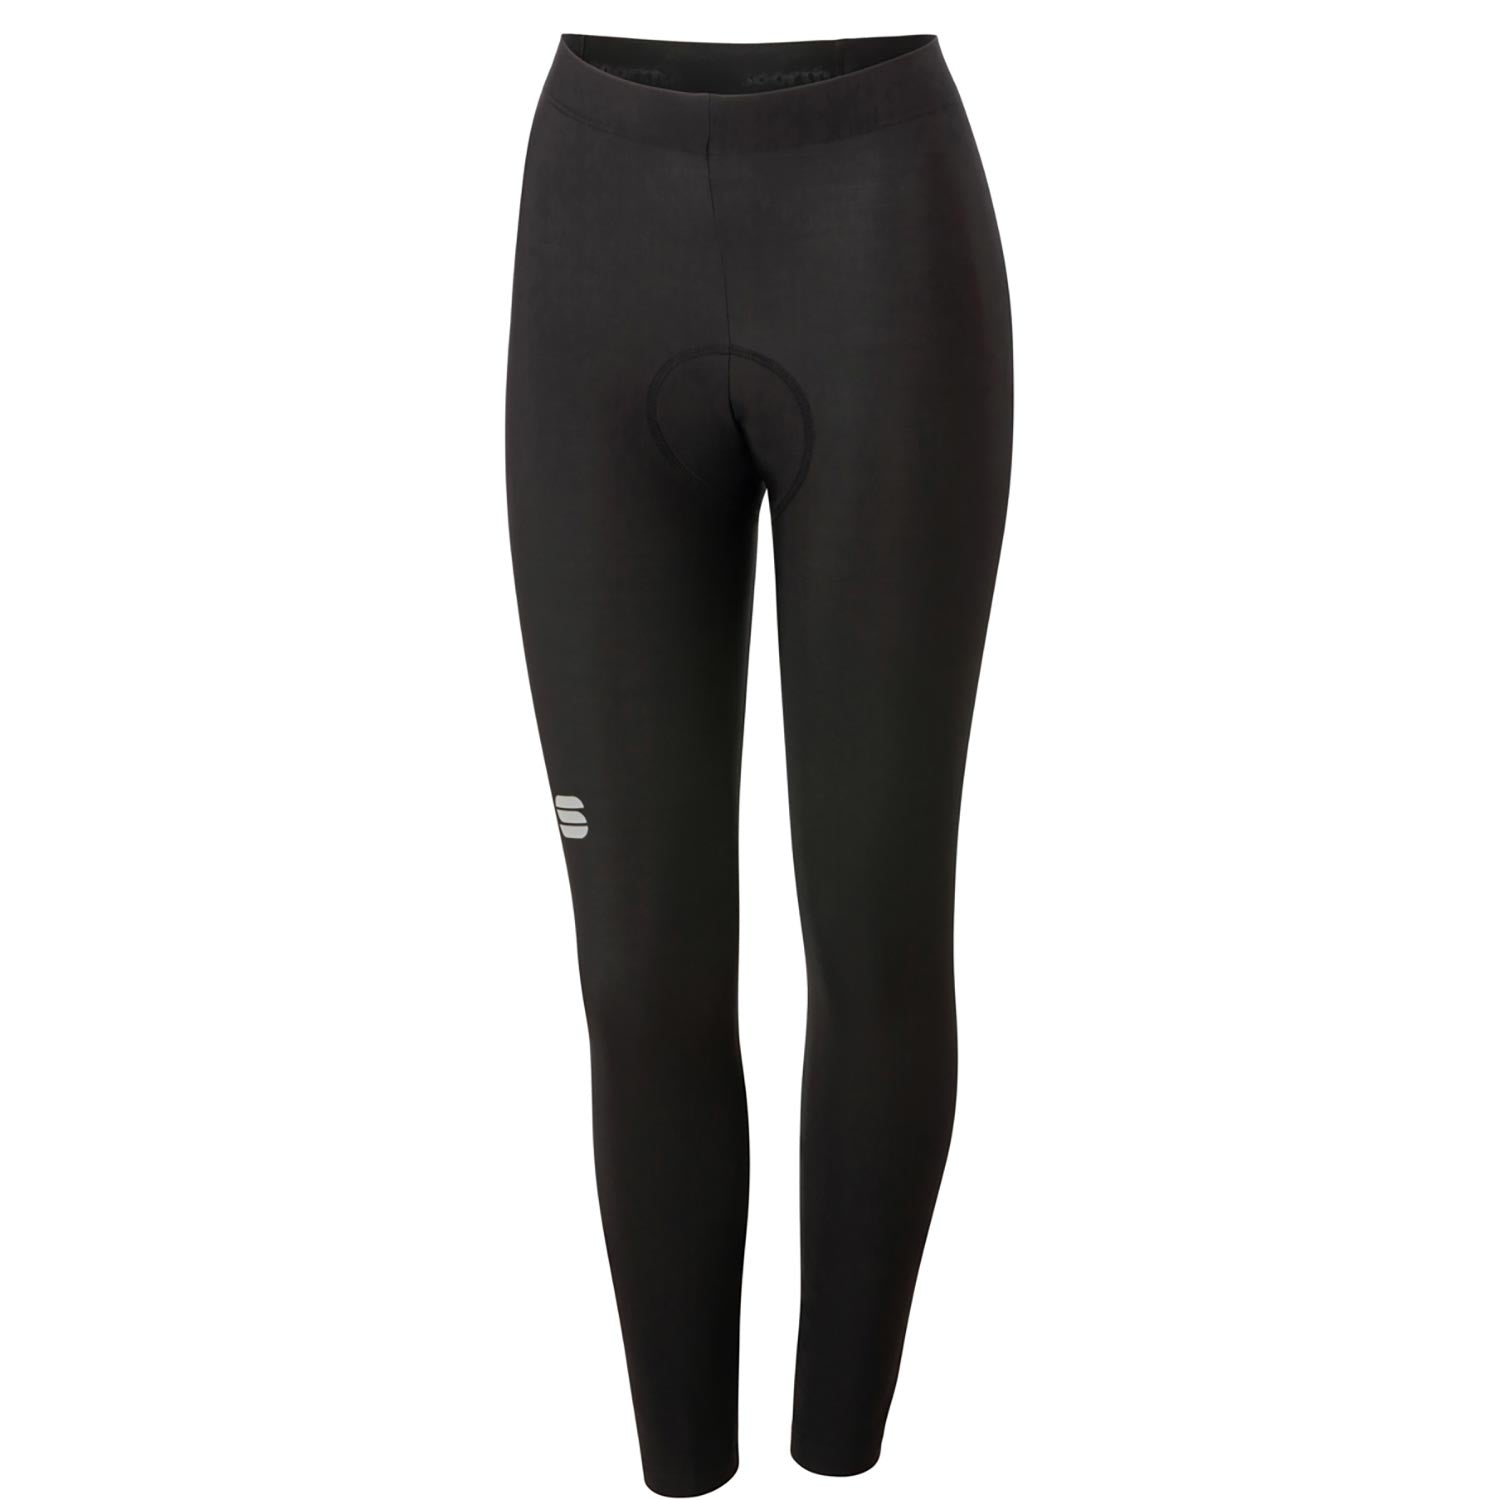 Sportful-Sportful Classic Women's Tights-Black-XS-SF205370021-saddleback-elite-performance-cycling